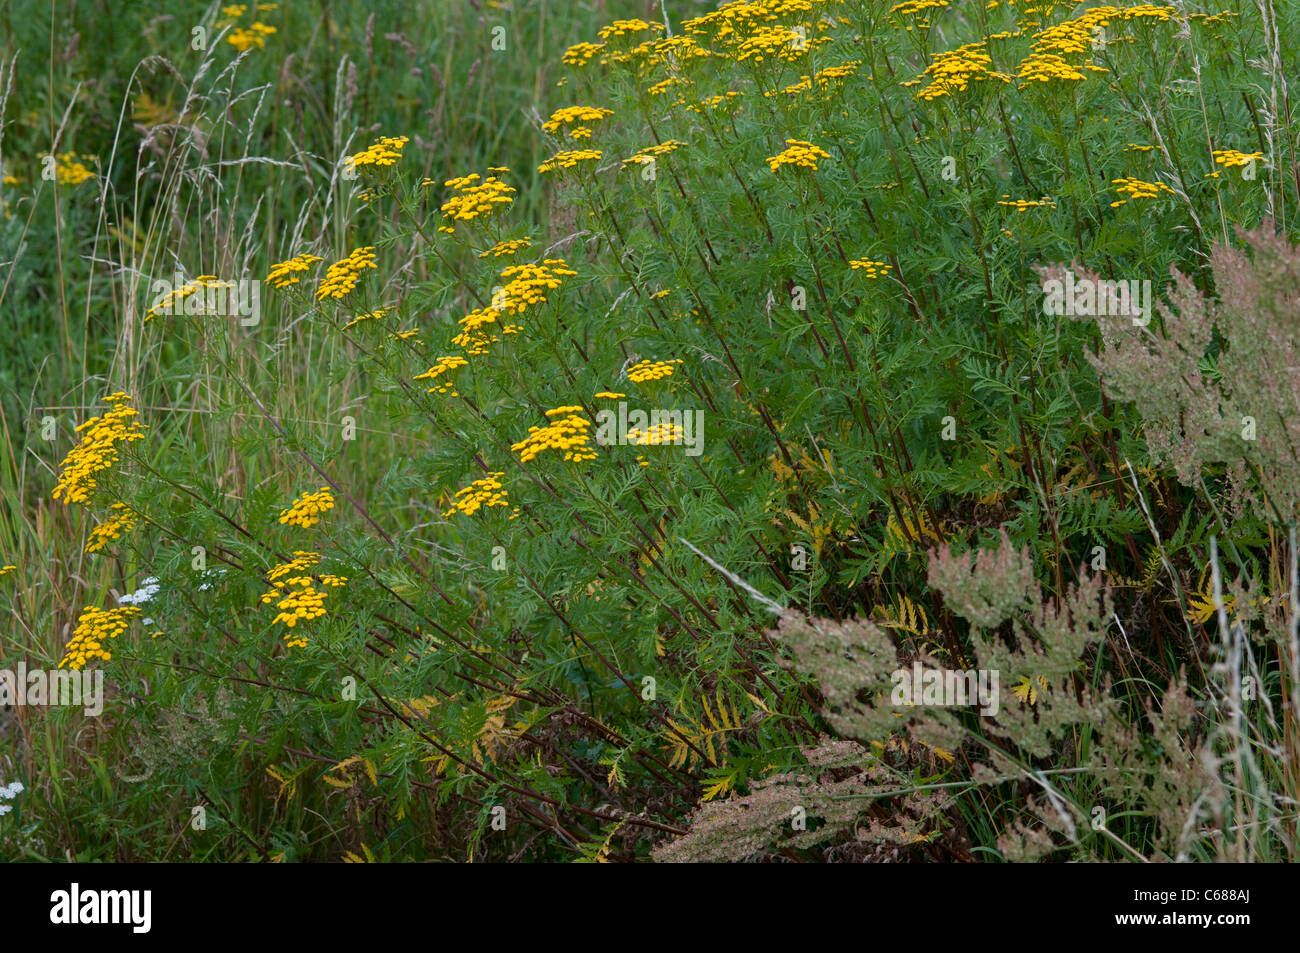 Tansy ( Tanacetum vulgare) is a plant of the aster family - Stock Image